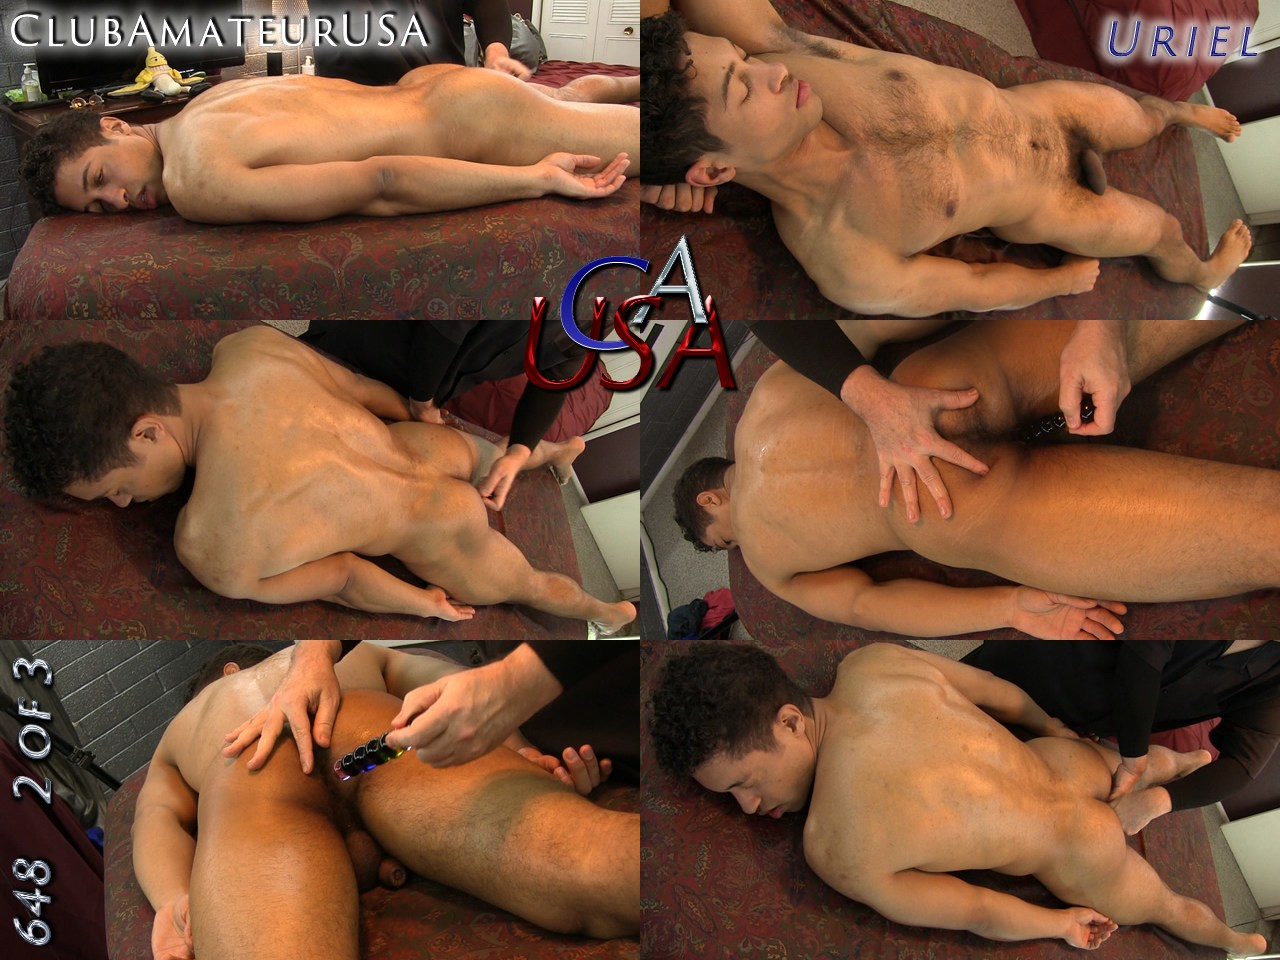 Download or Stream CAUSA 648 Uriel - 2 of 3 - Click Here Now